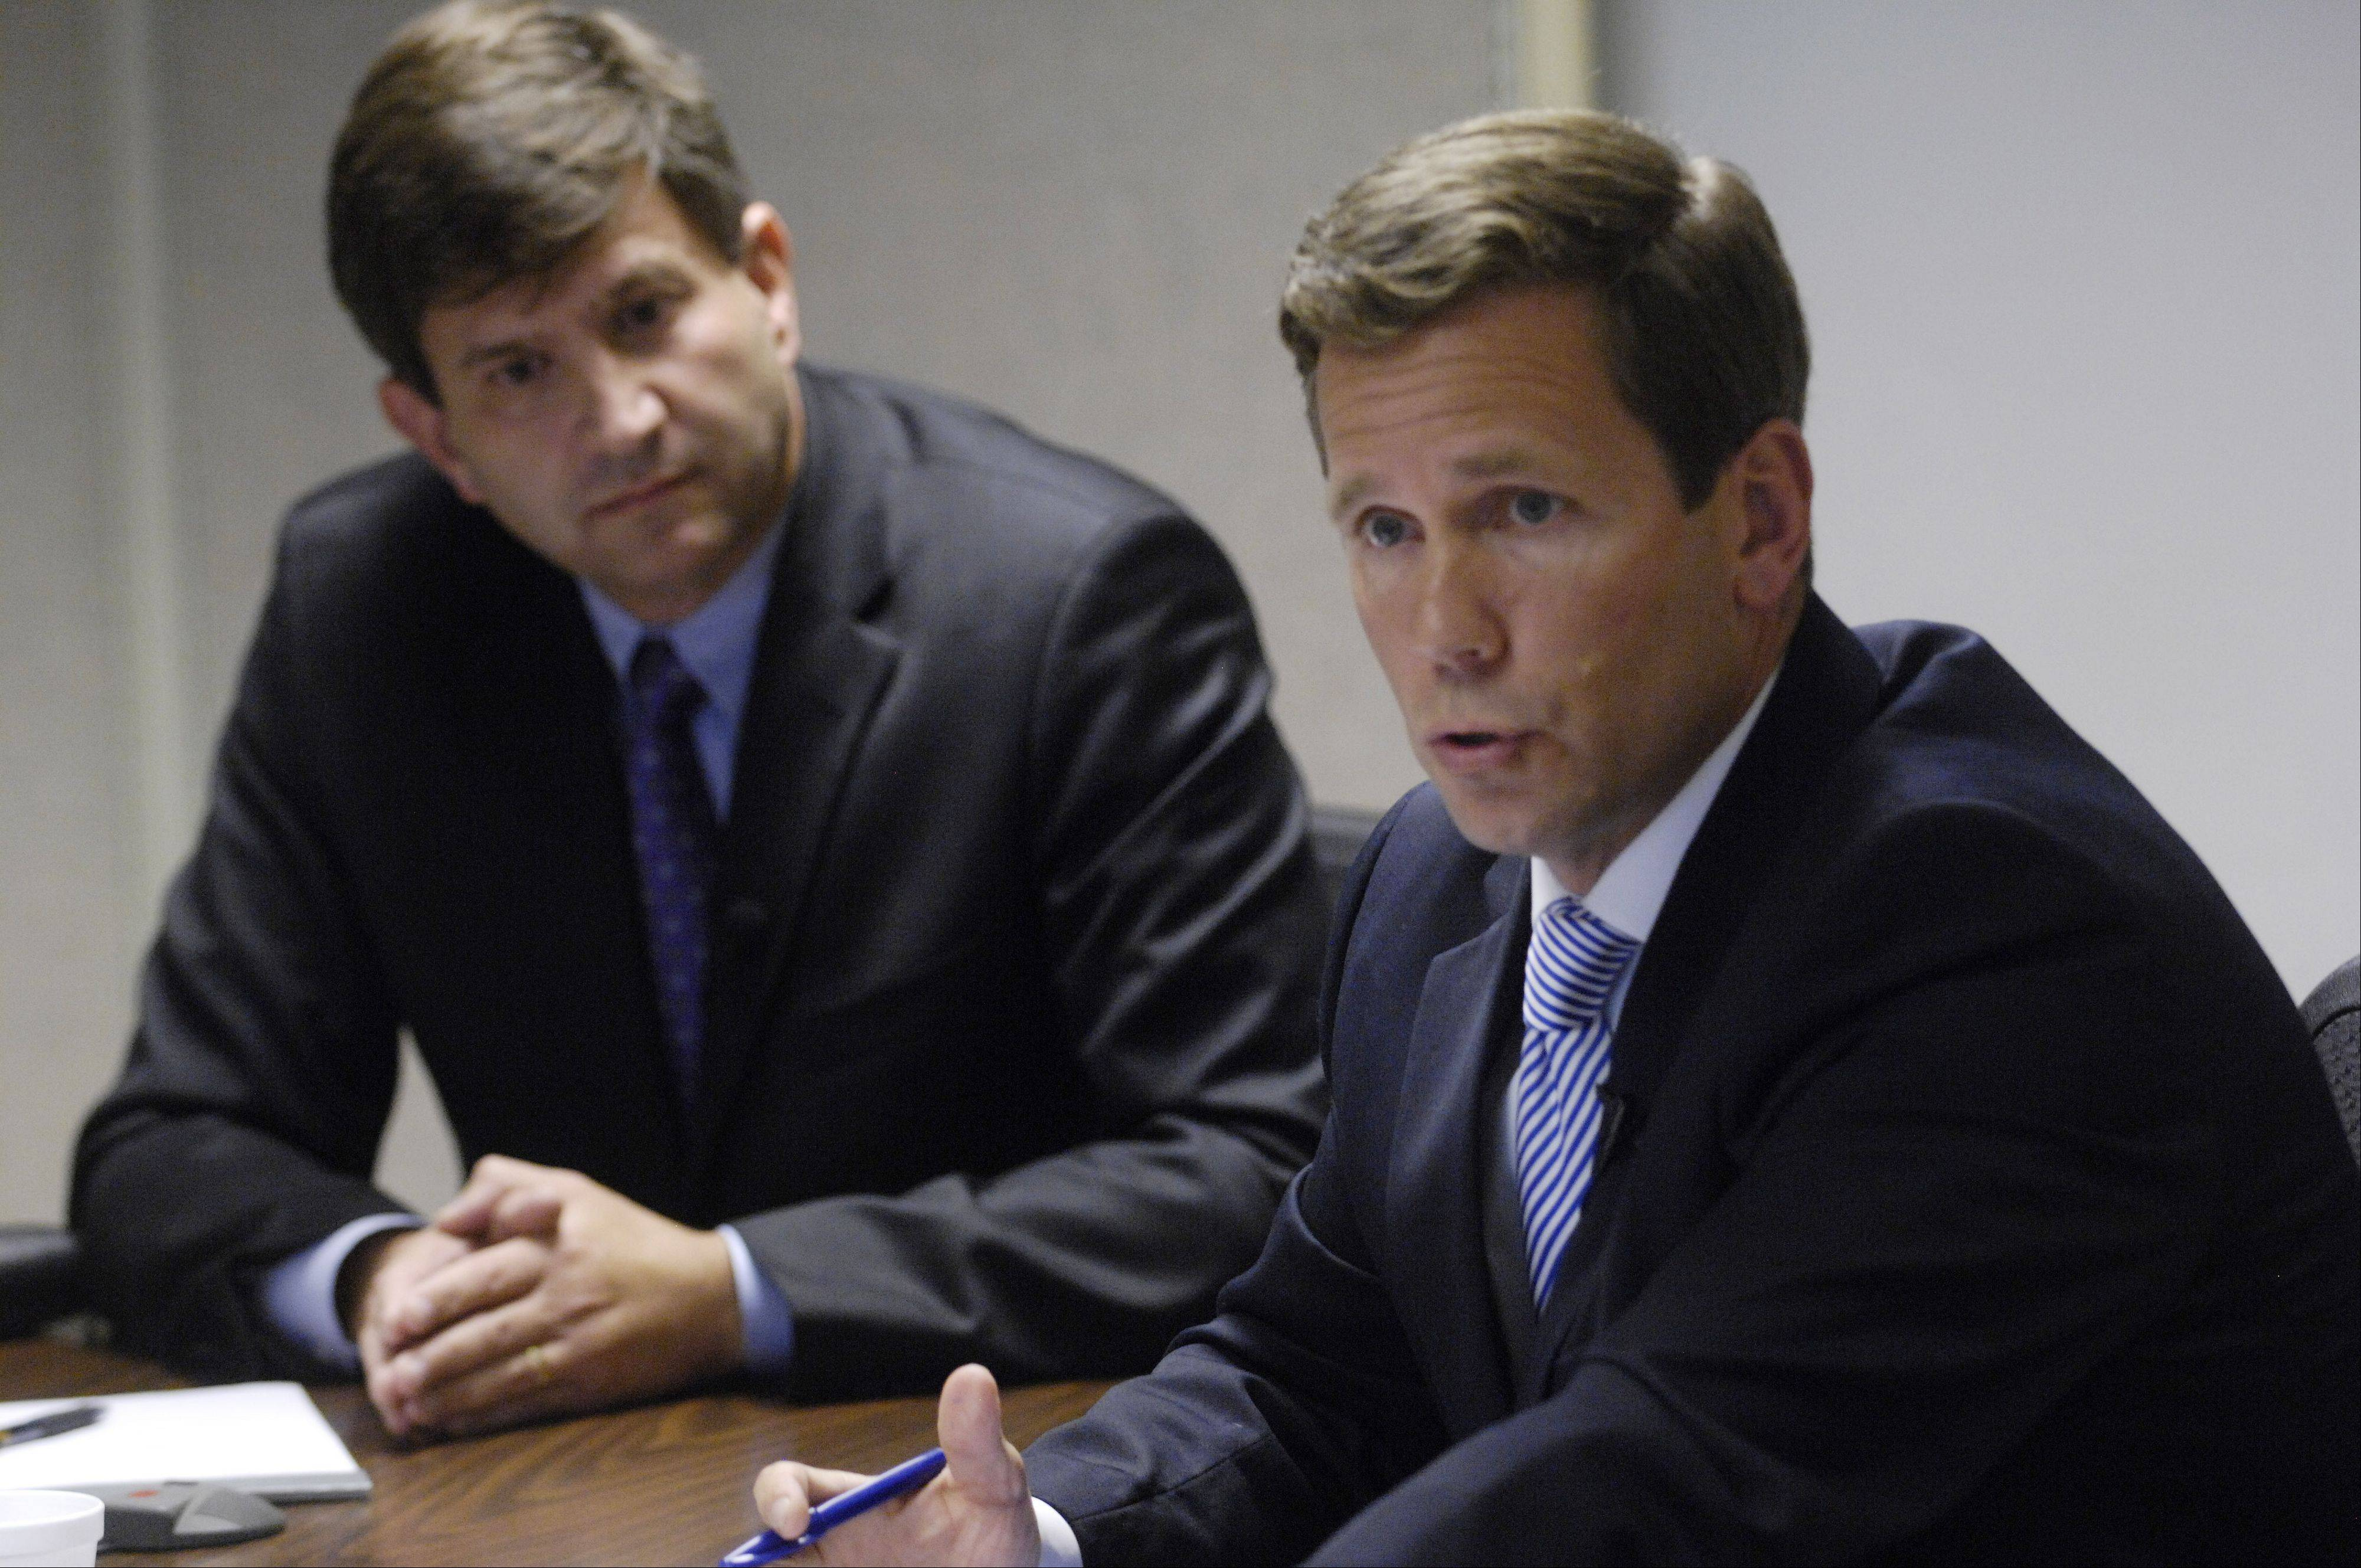 Brad Schneider's Tea Party allegations rile Robert Dold in House race